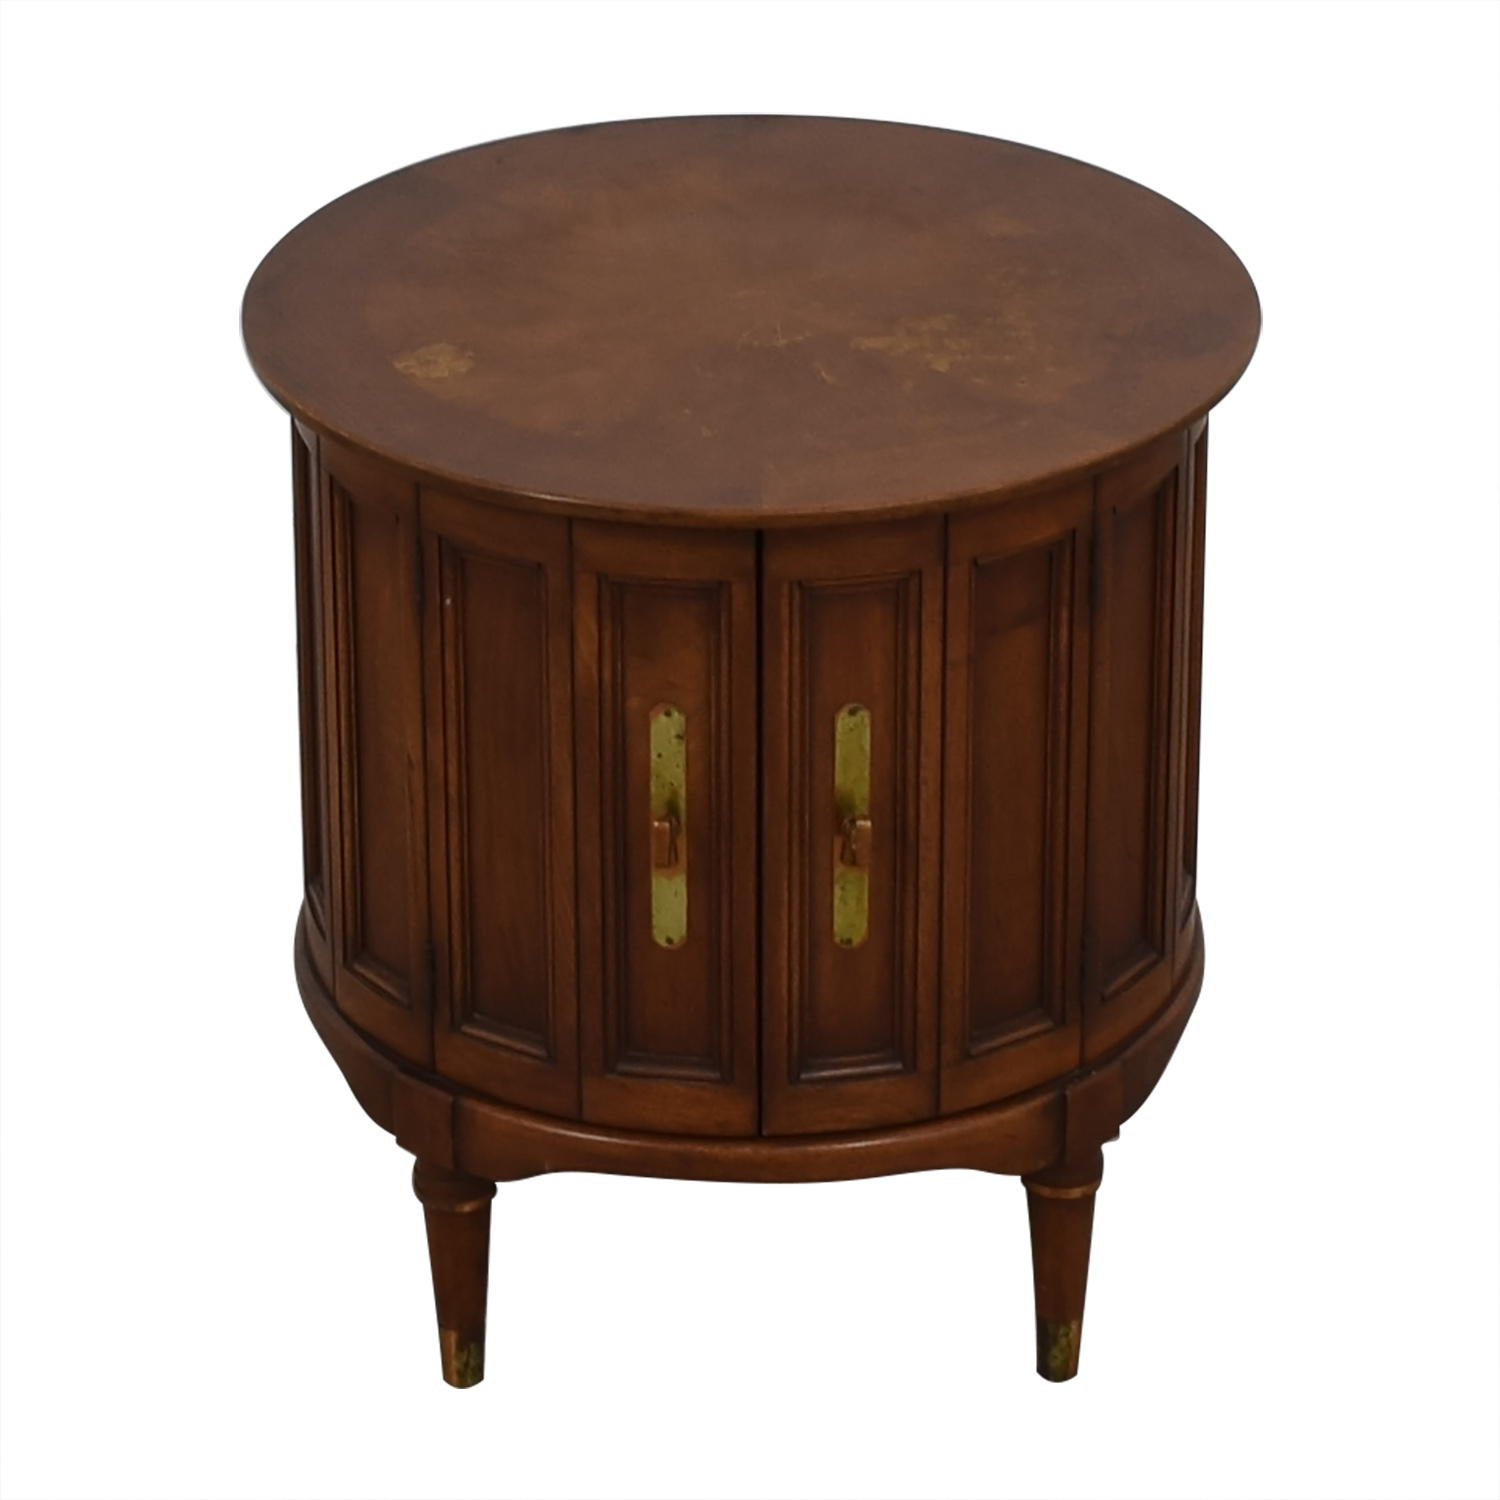 buy Antique Round Wood End Table